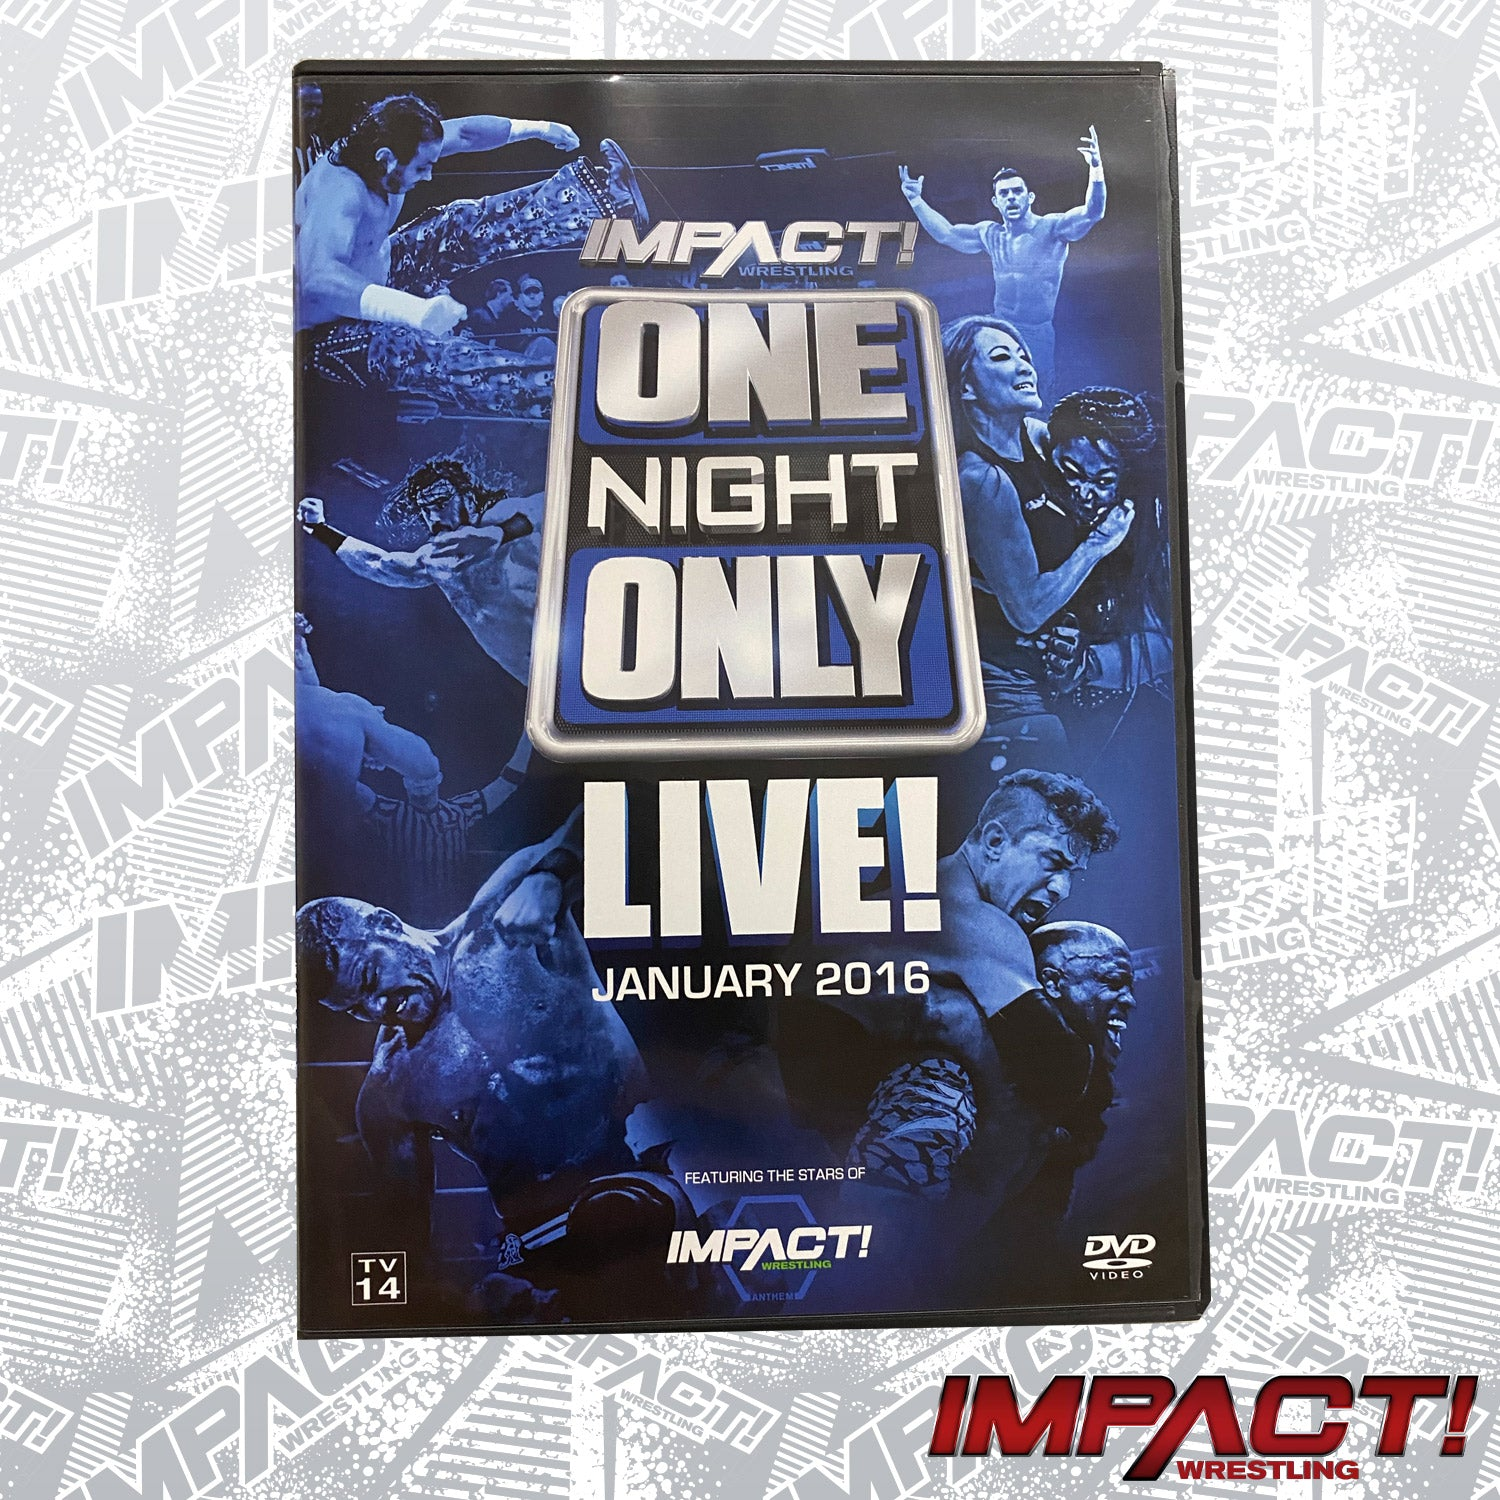 One Night Only: LIVE 2016 DVD